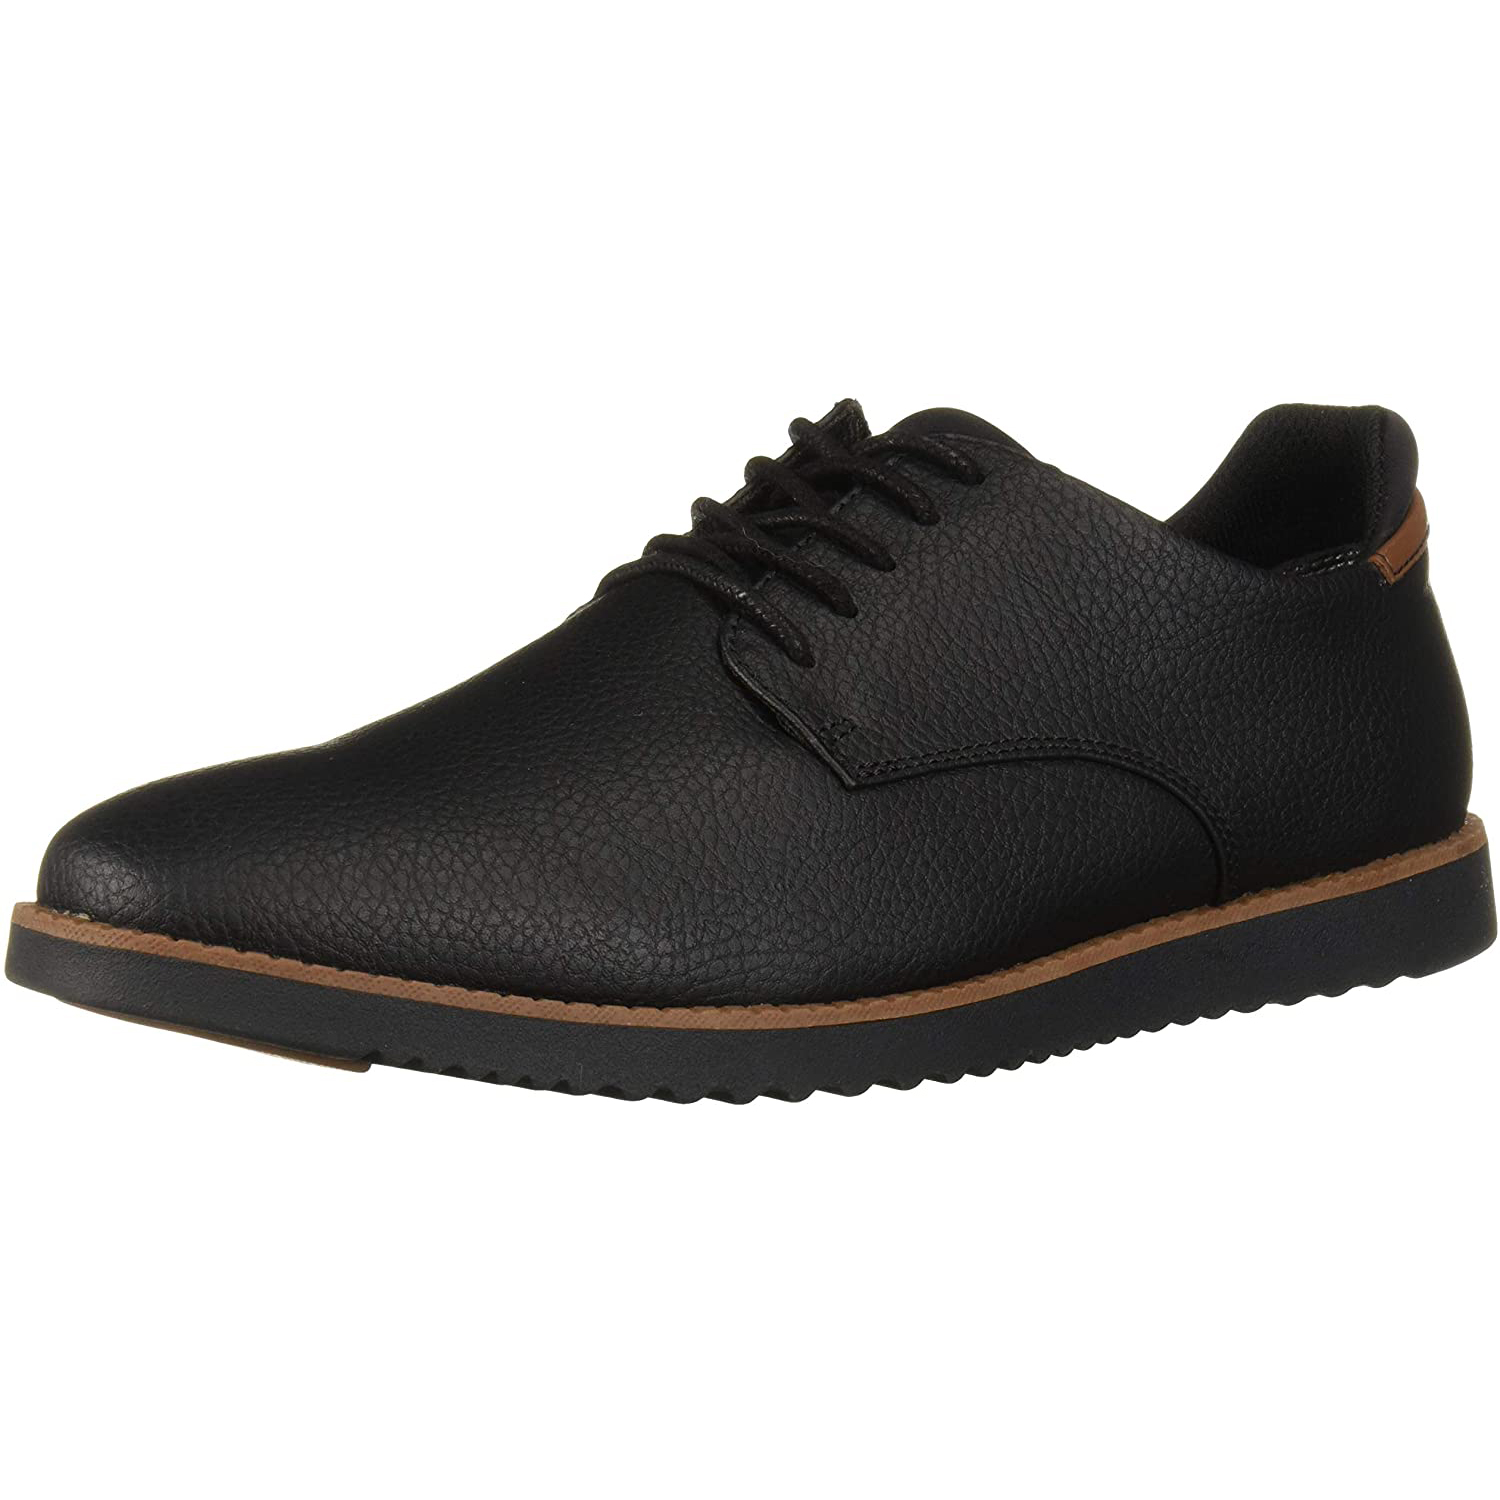 Dr. Scholl's Sync Oxford, most comfortable dress shoes